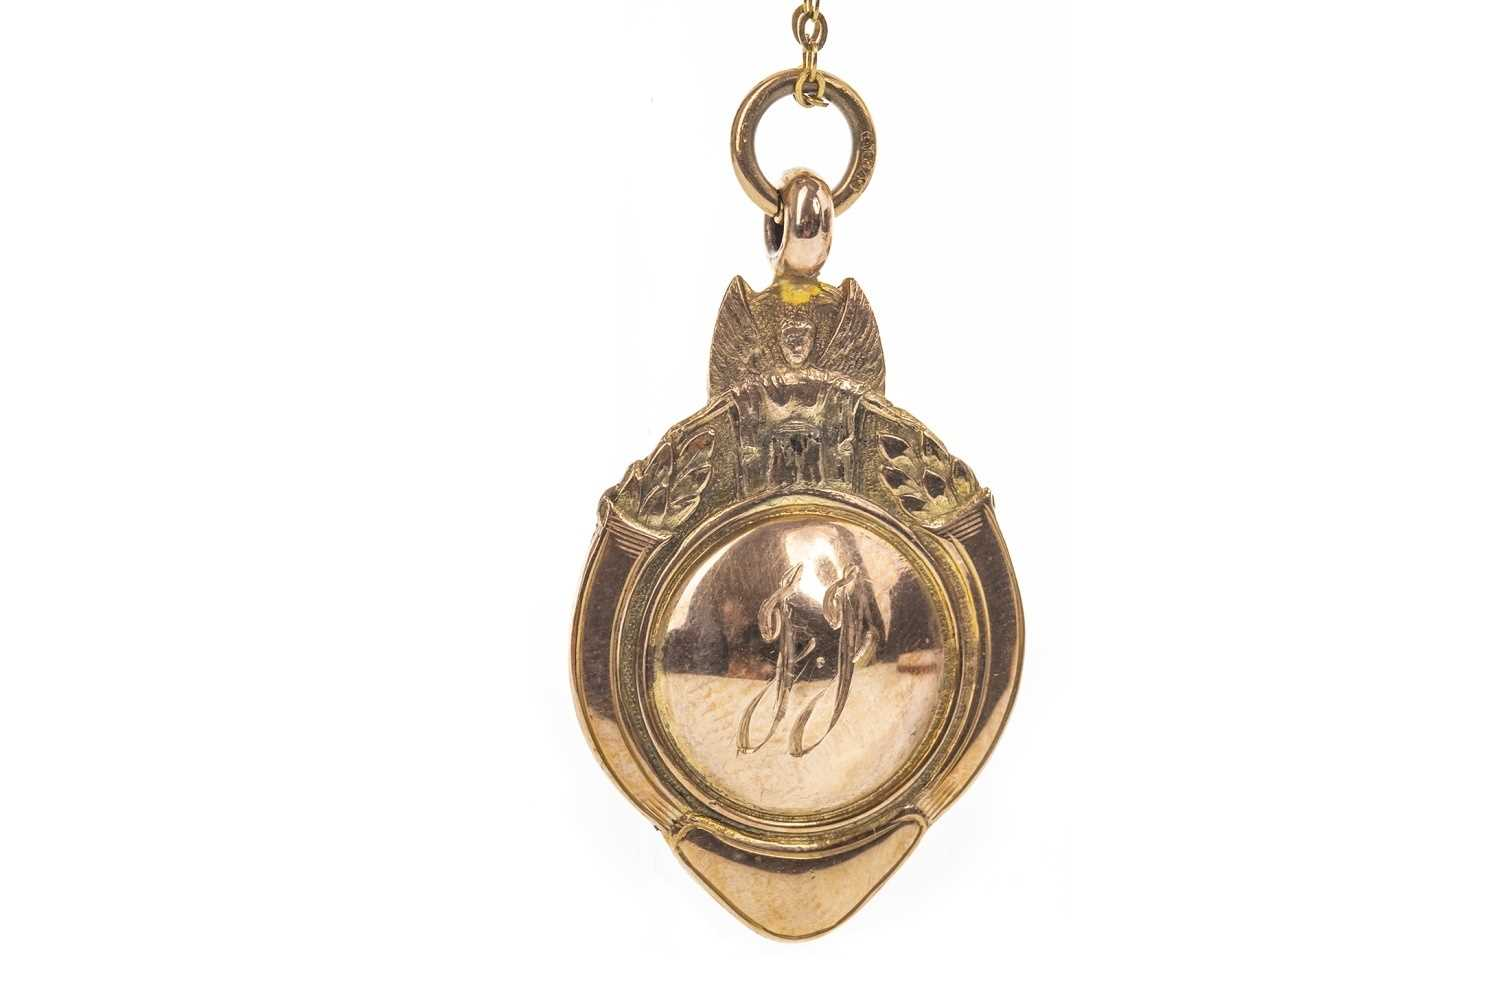 Lot 1724 - AN EARLY 20TH CENTURY NINE CARAT GOLD FOB MEDAL